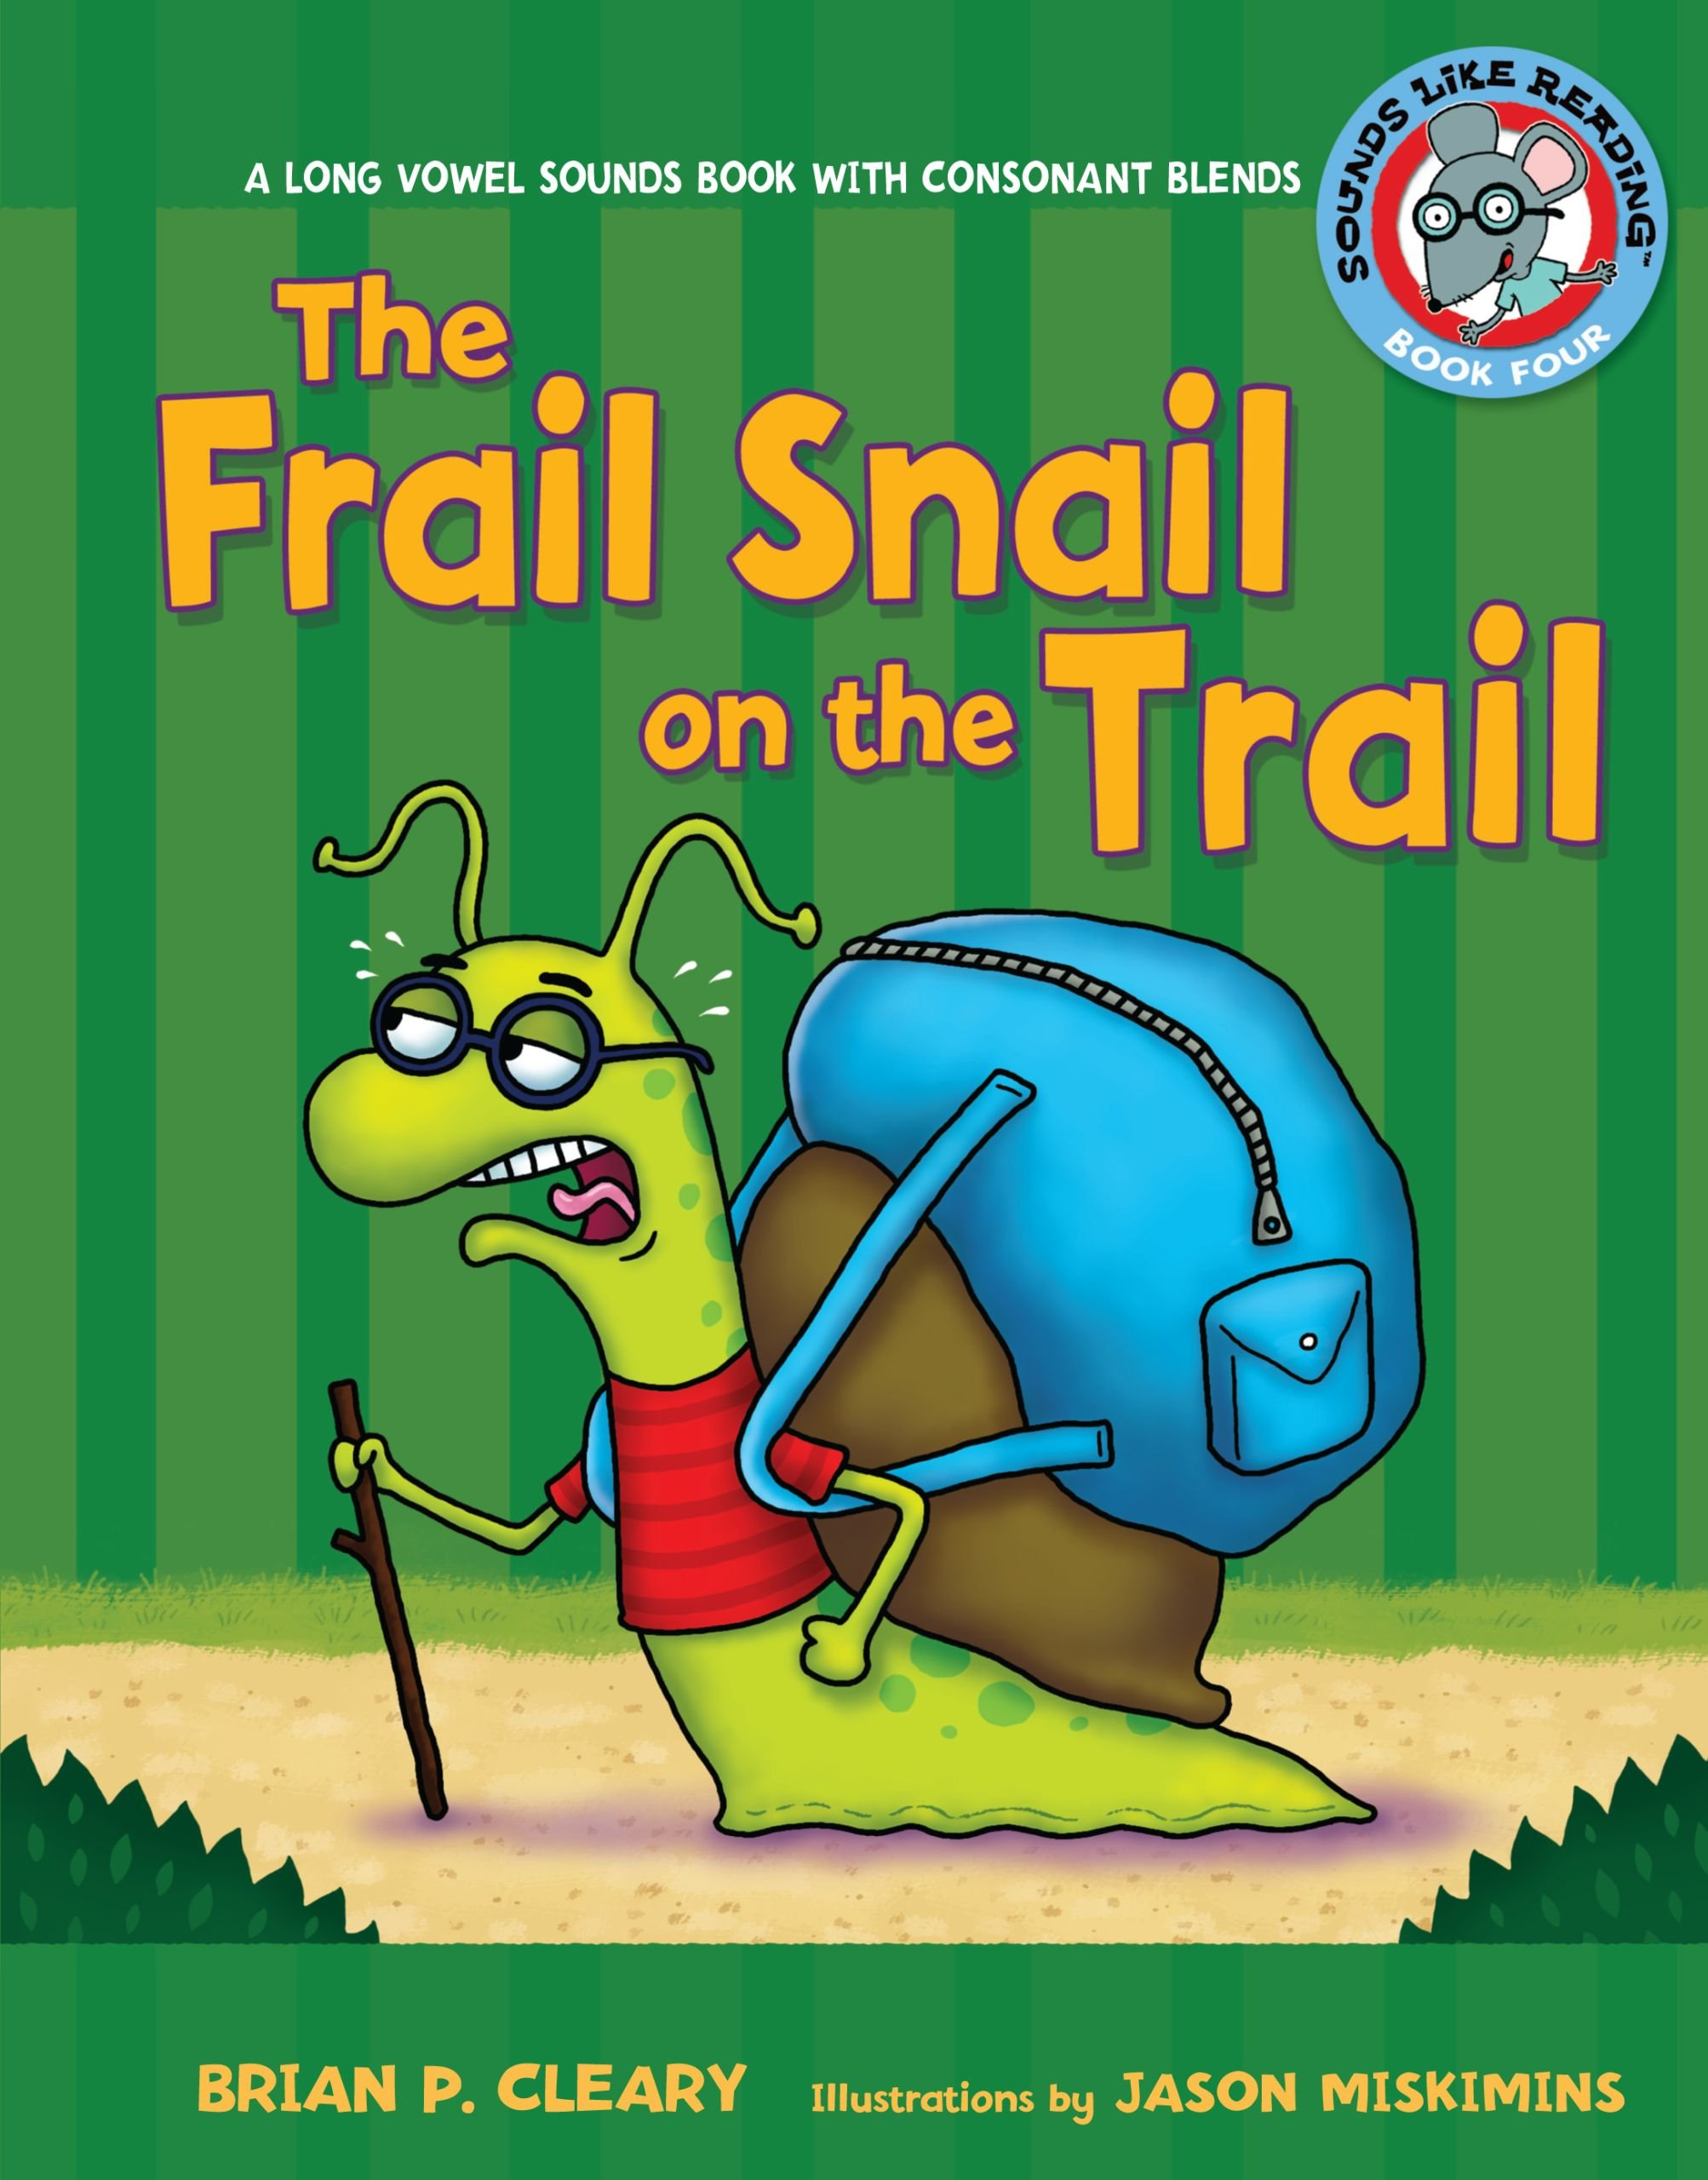 The Frail Snail on the Trail: A Long Vowel Sounds Book With Consonant Blends (Sounds Like Reading) ebook